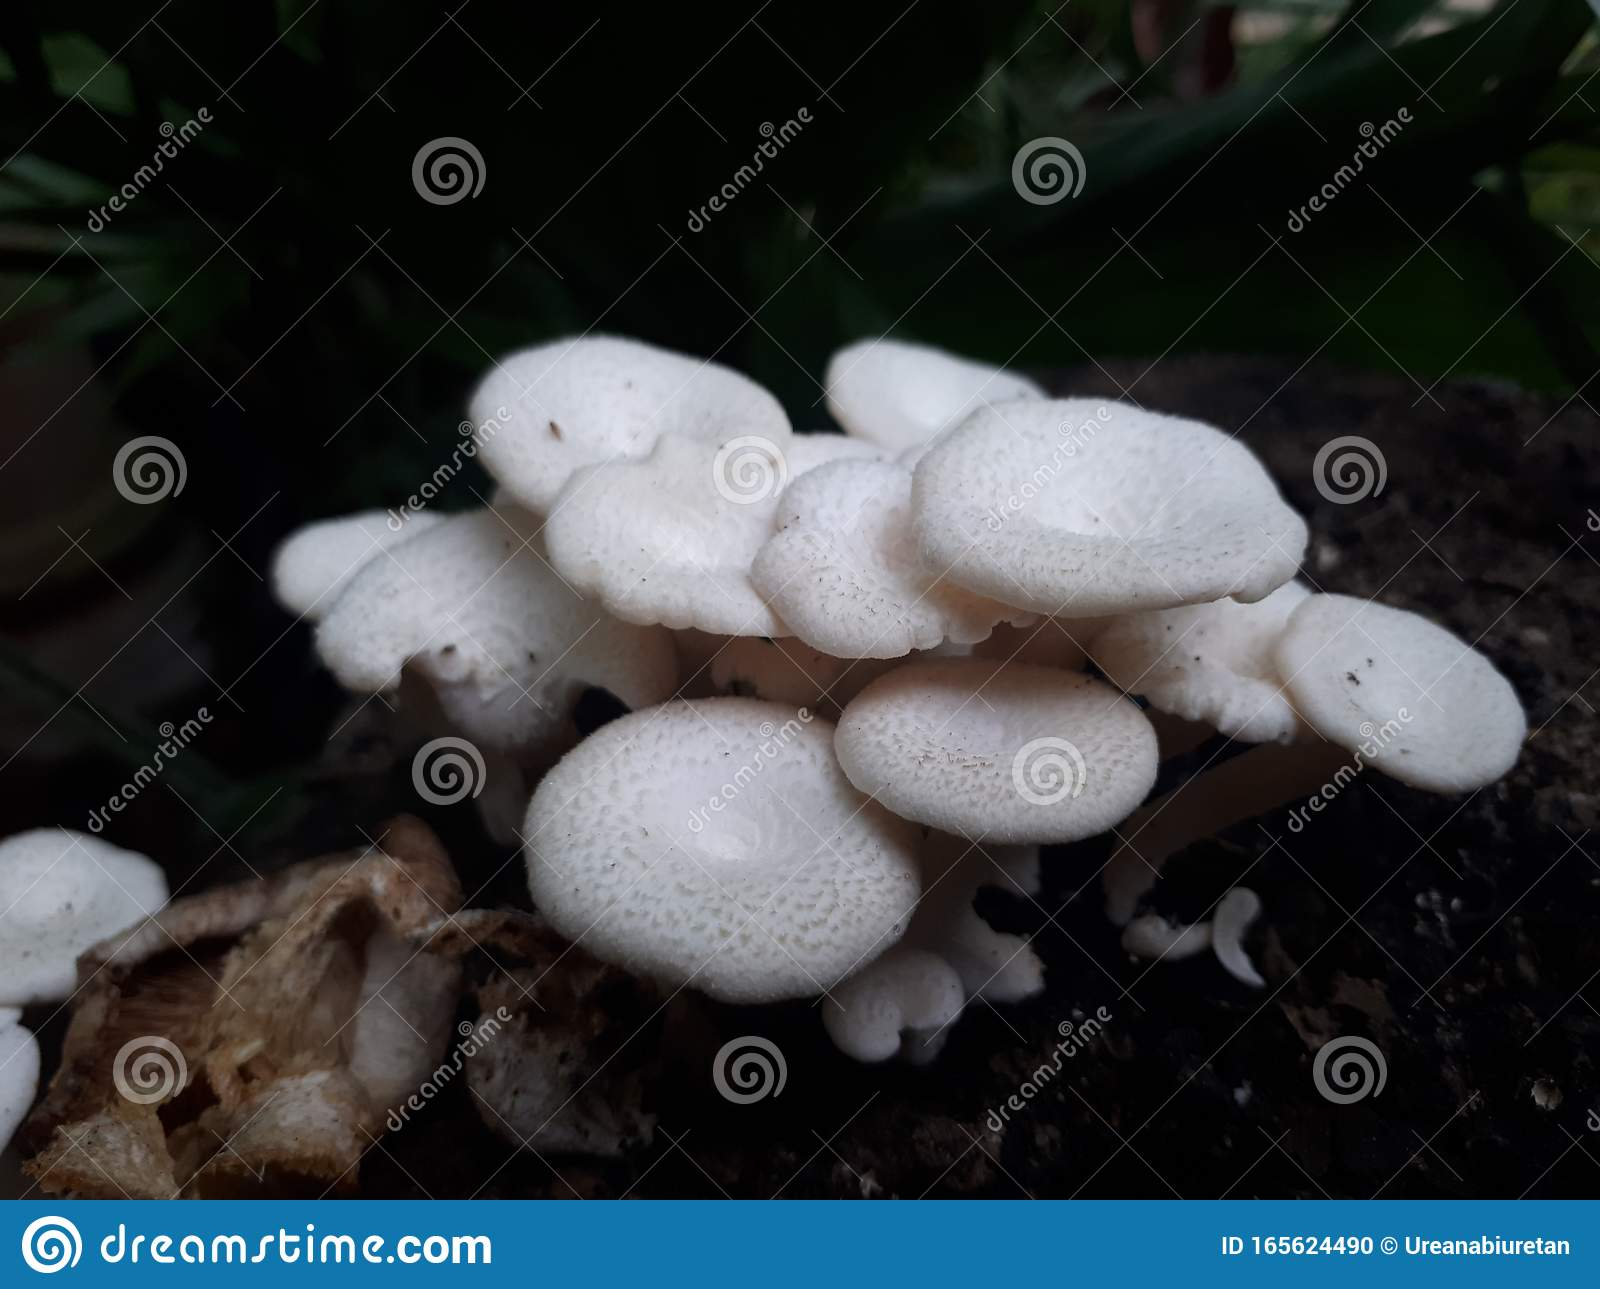 Mushroom Growing After The Rain Came 3 Stock Photo